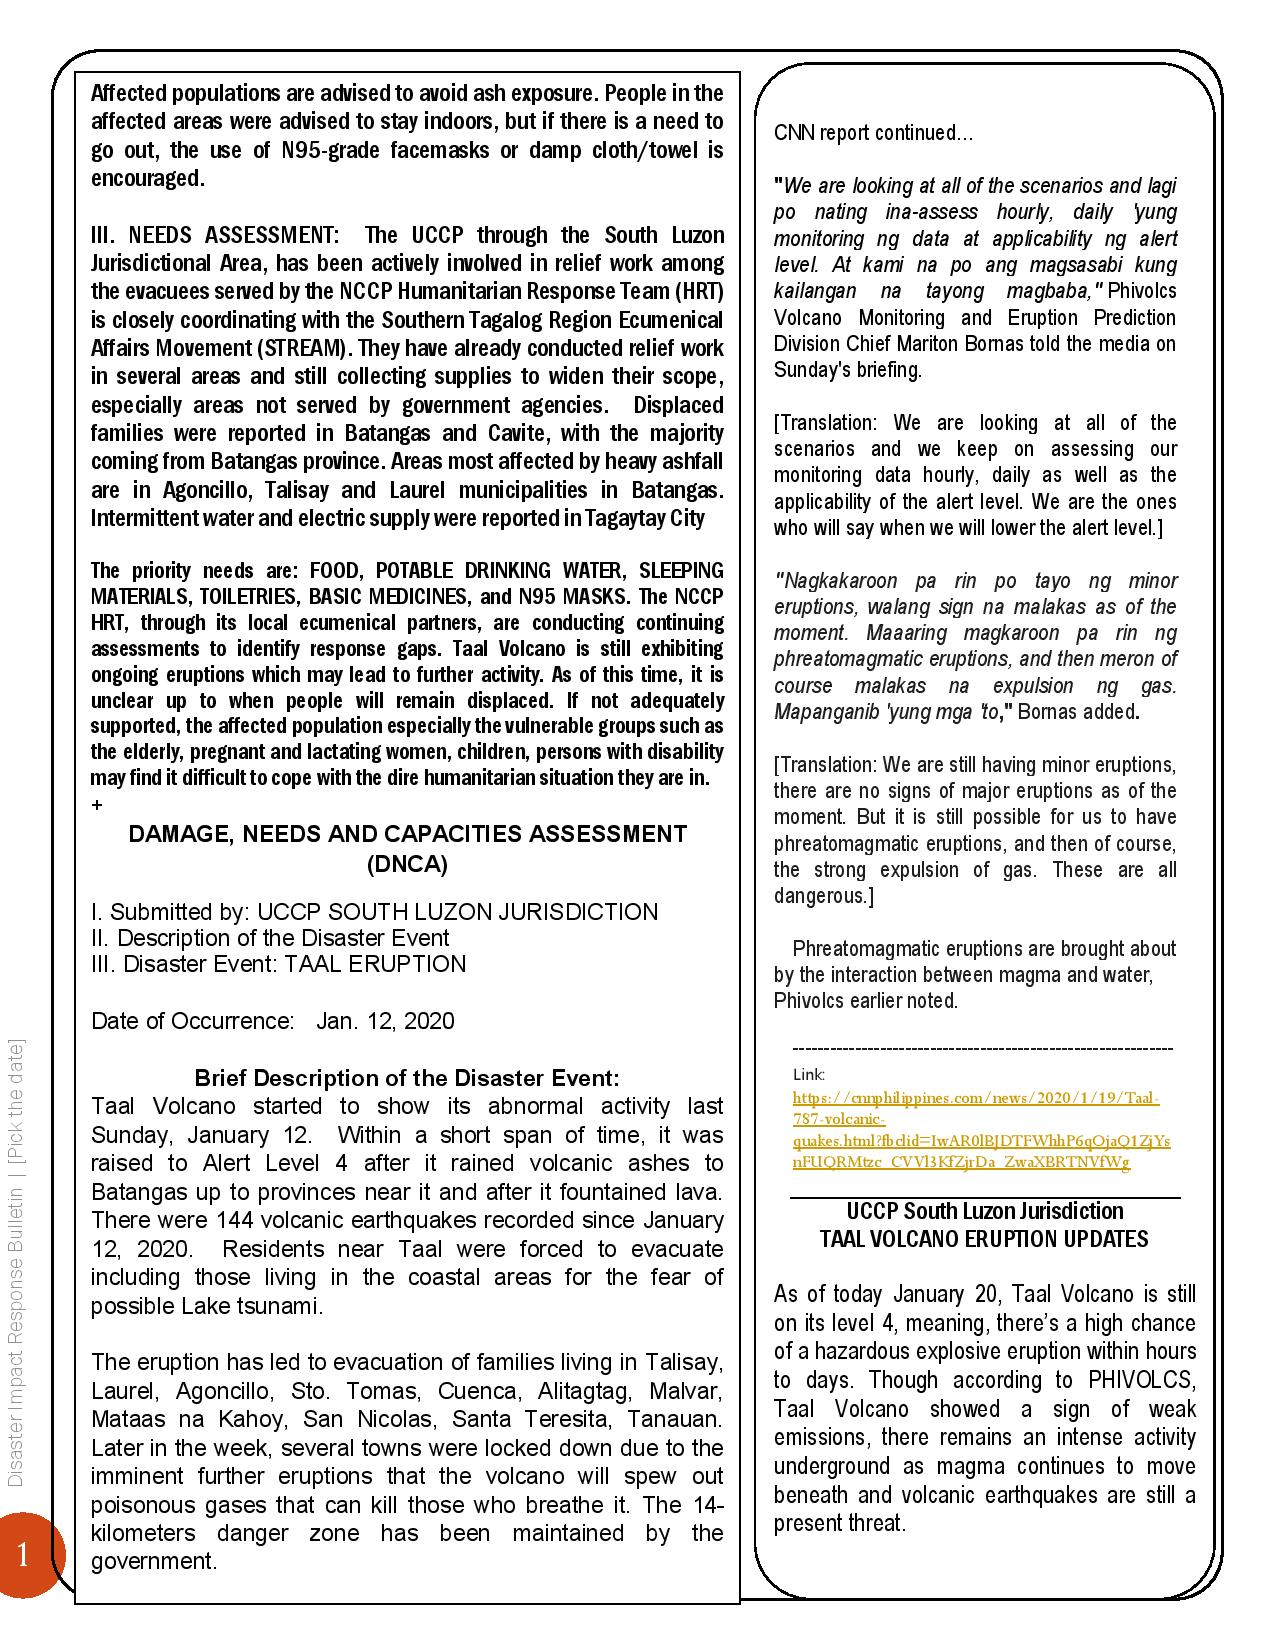 2020-Disaster-Impact-Response-Bulletin -TAAL VOLCANO ERUPTION-Edited-page-002